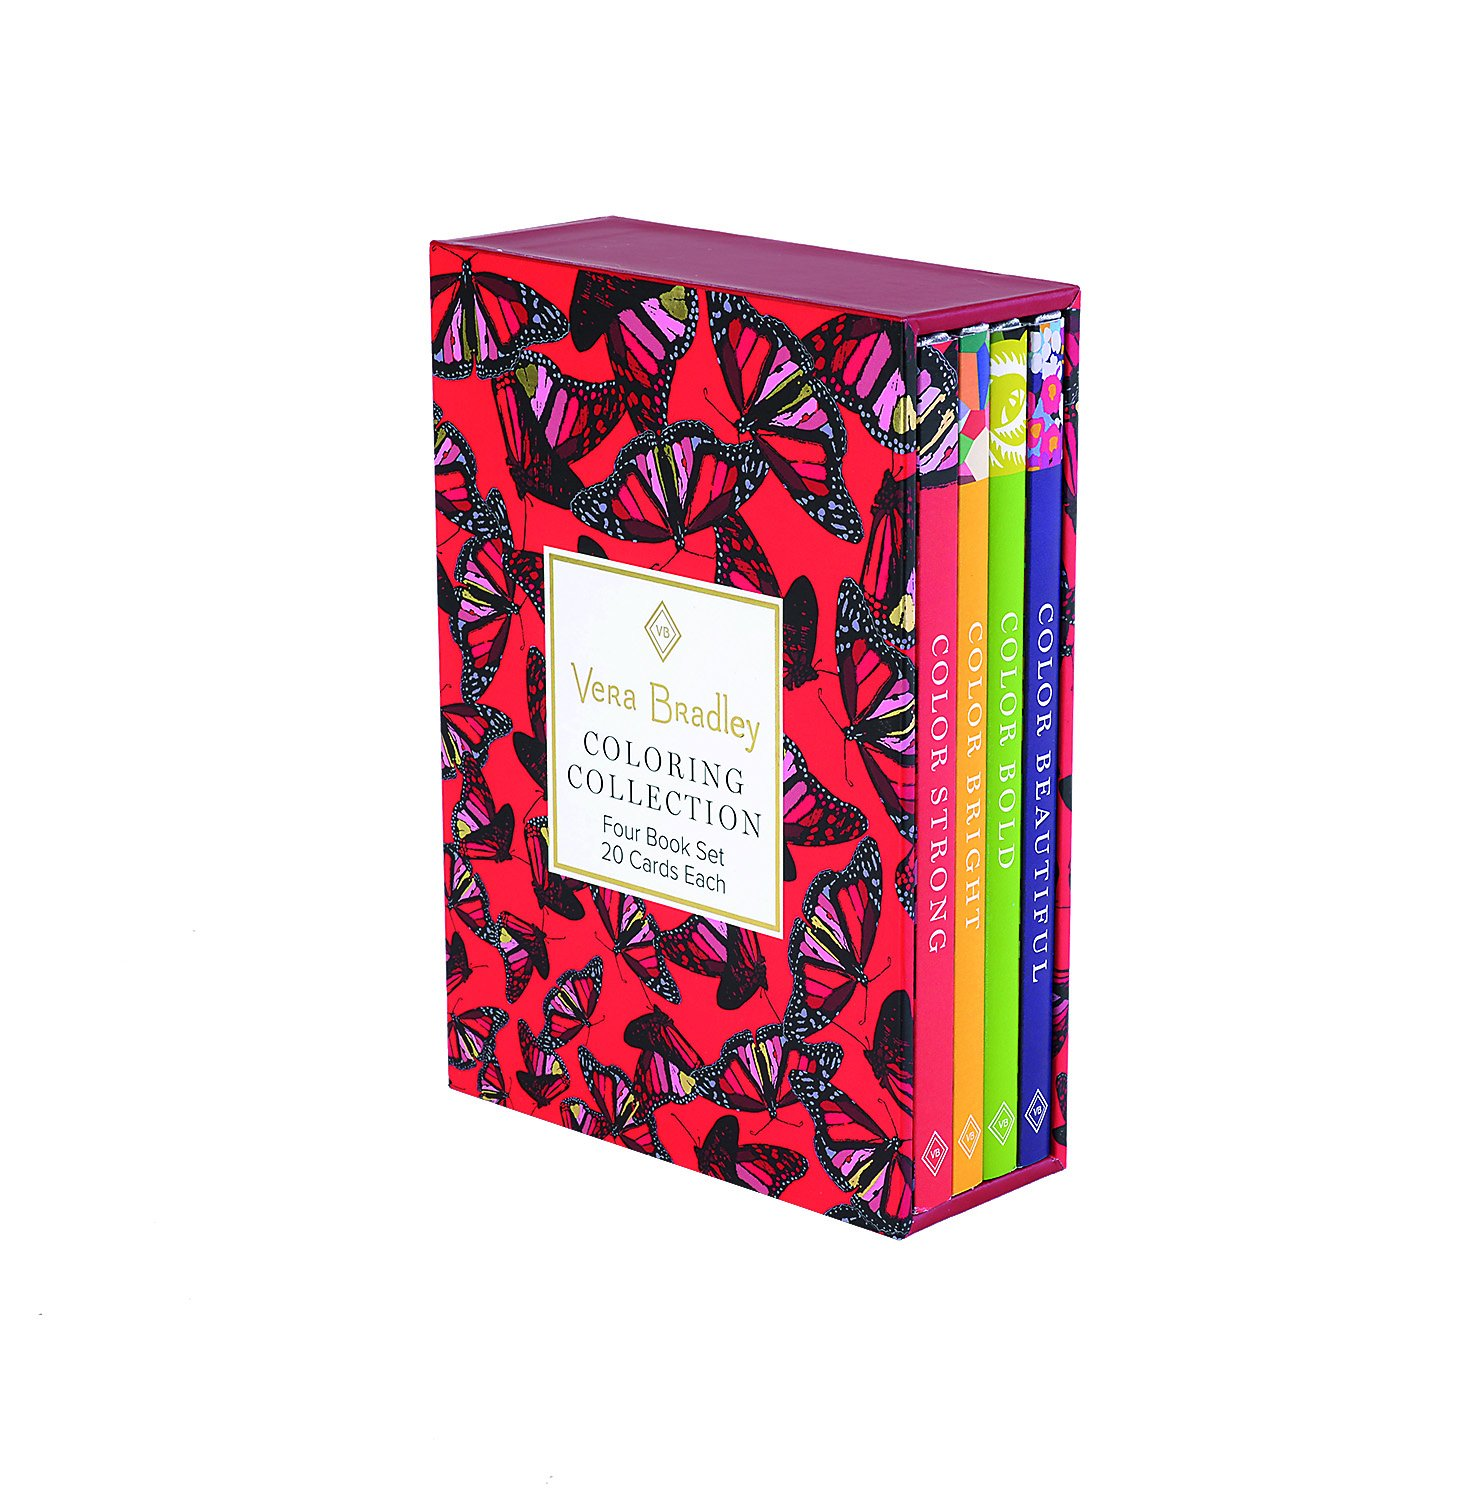 Vera Bradley Coloring Collection product image